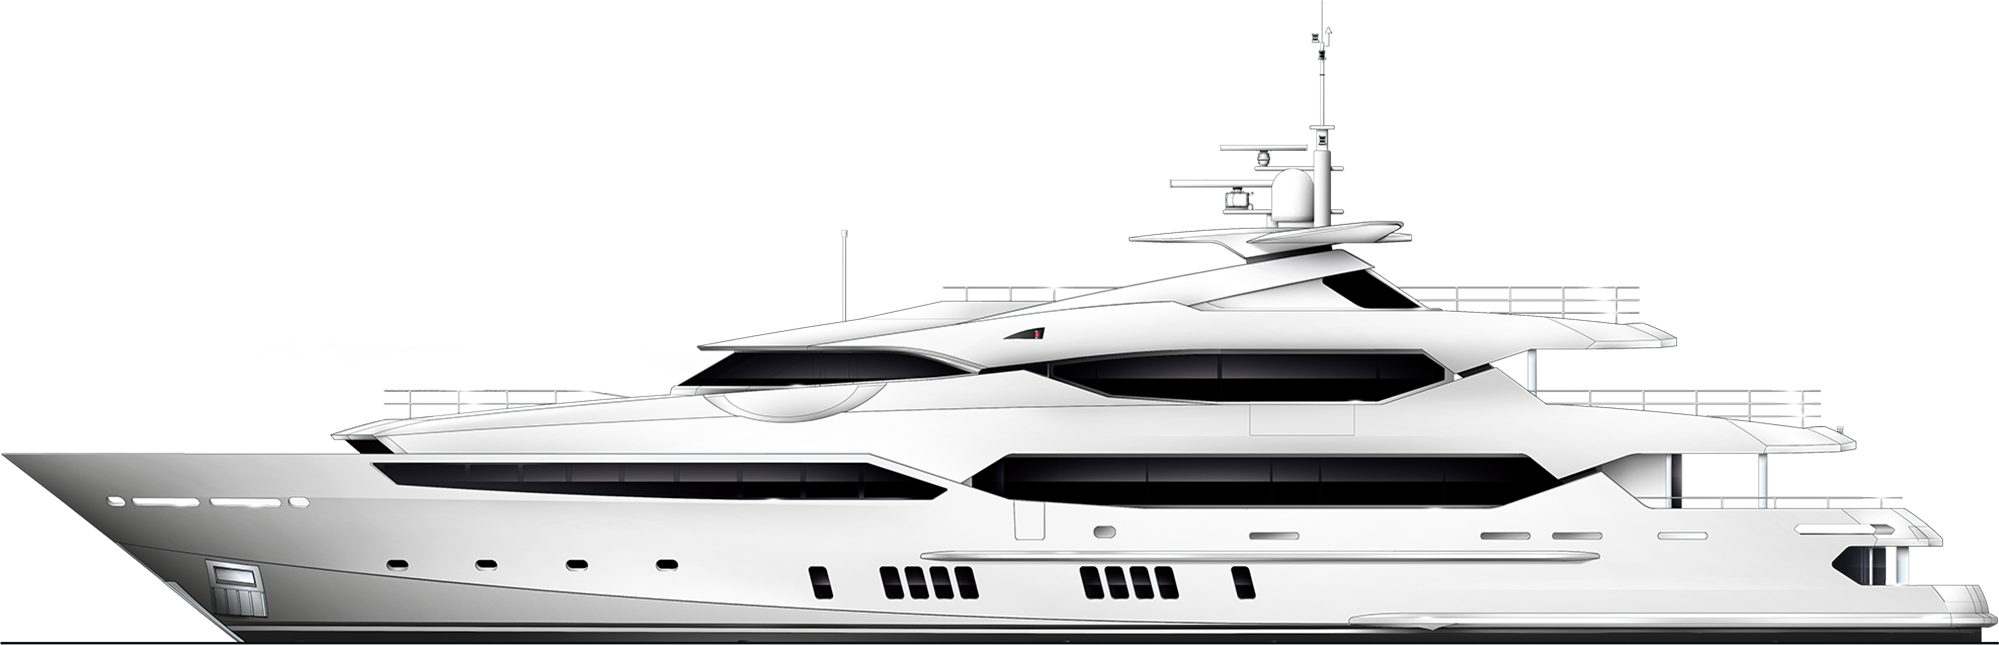 Yacht clipart yatch. Sunseeker effortlessly reaches the